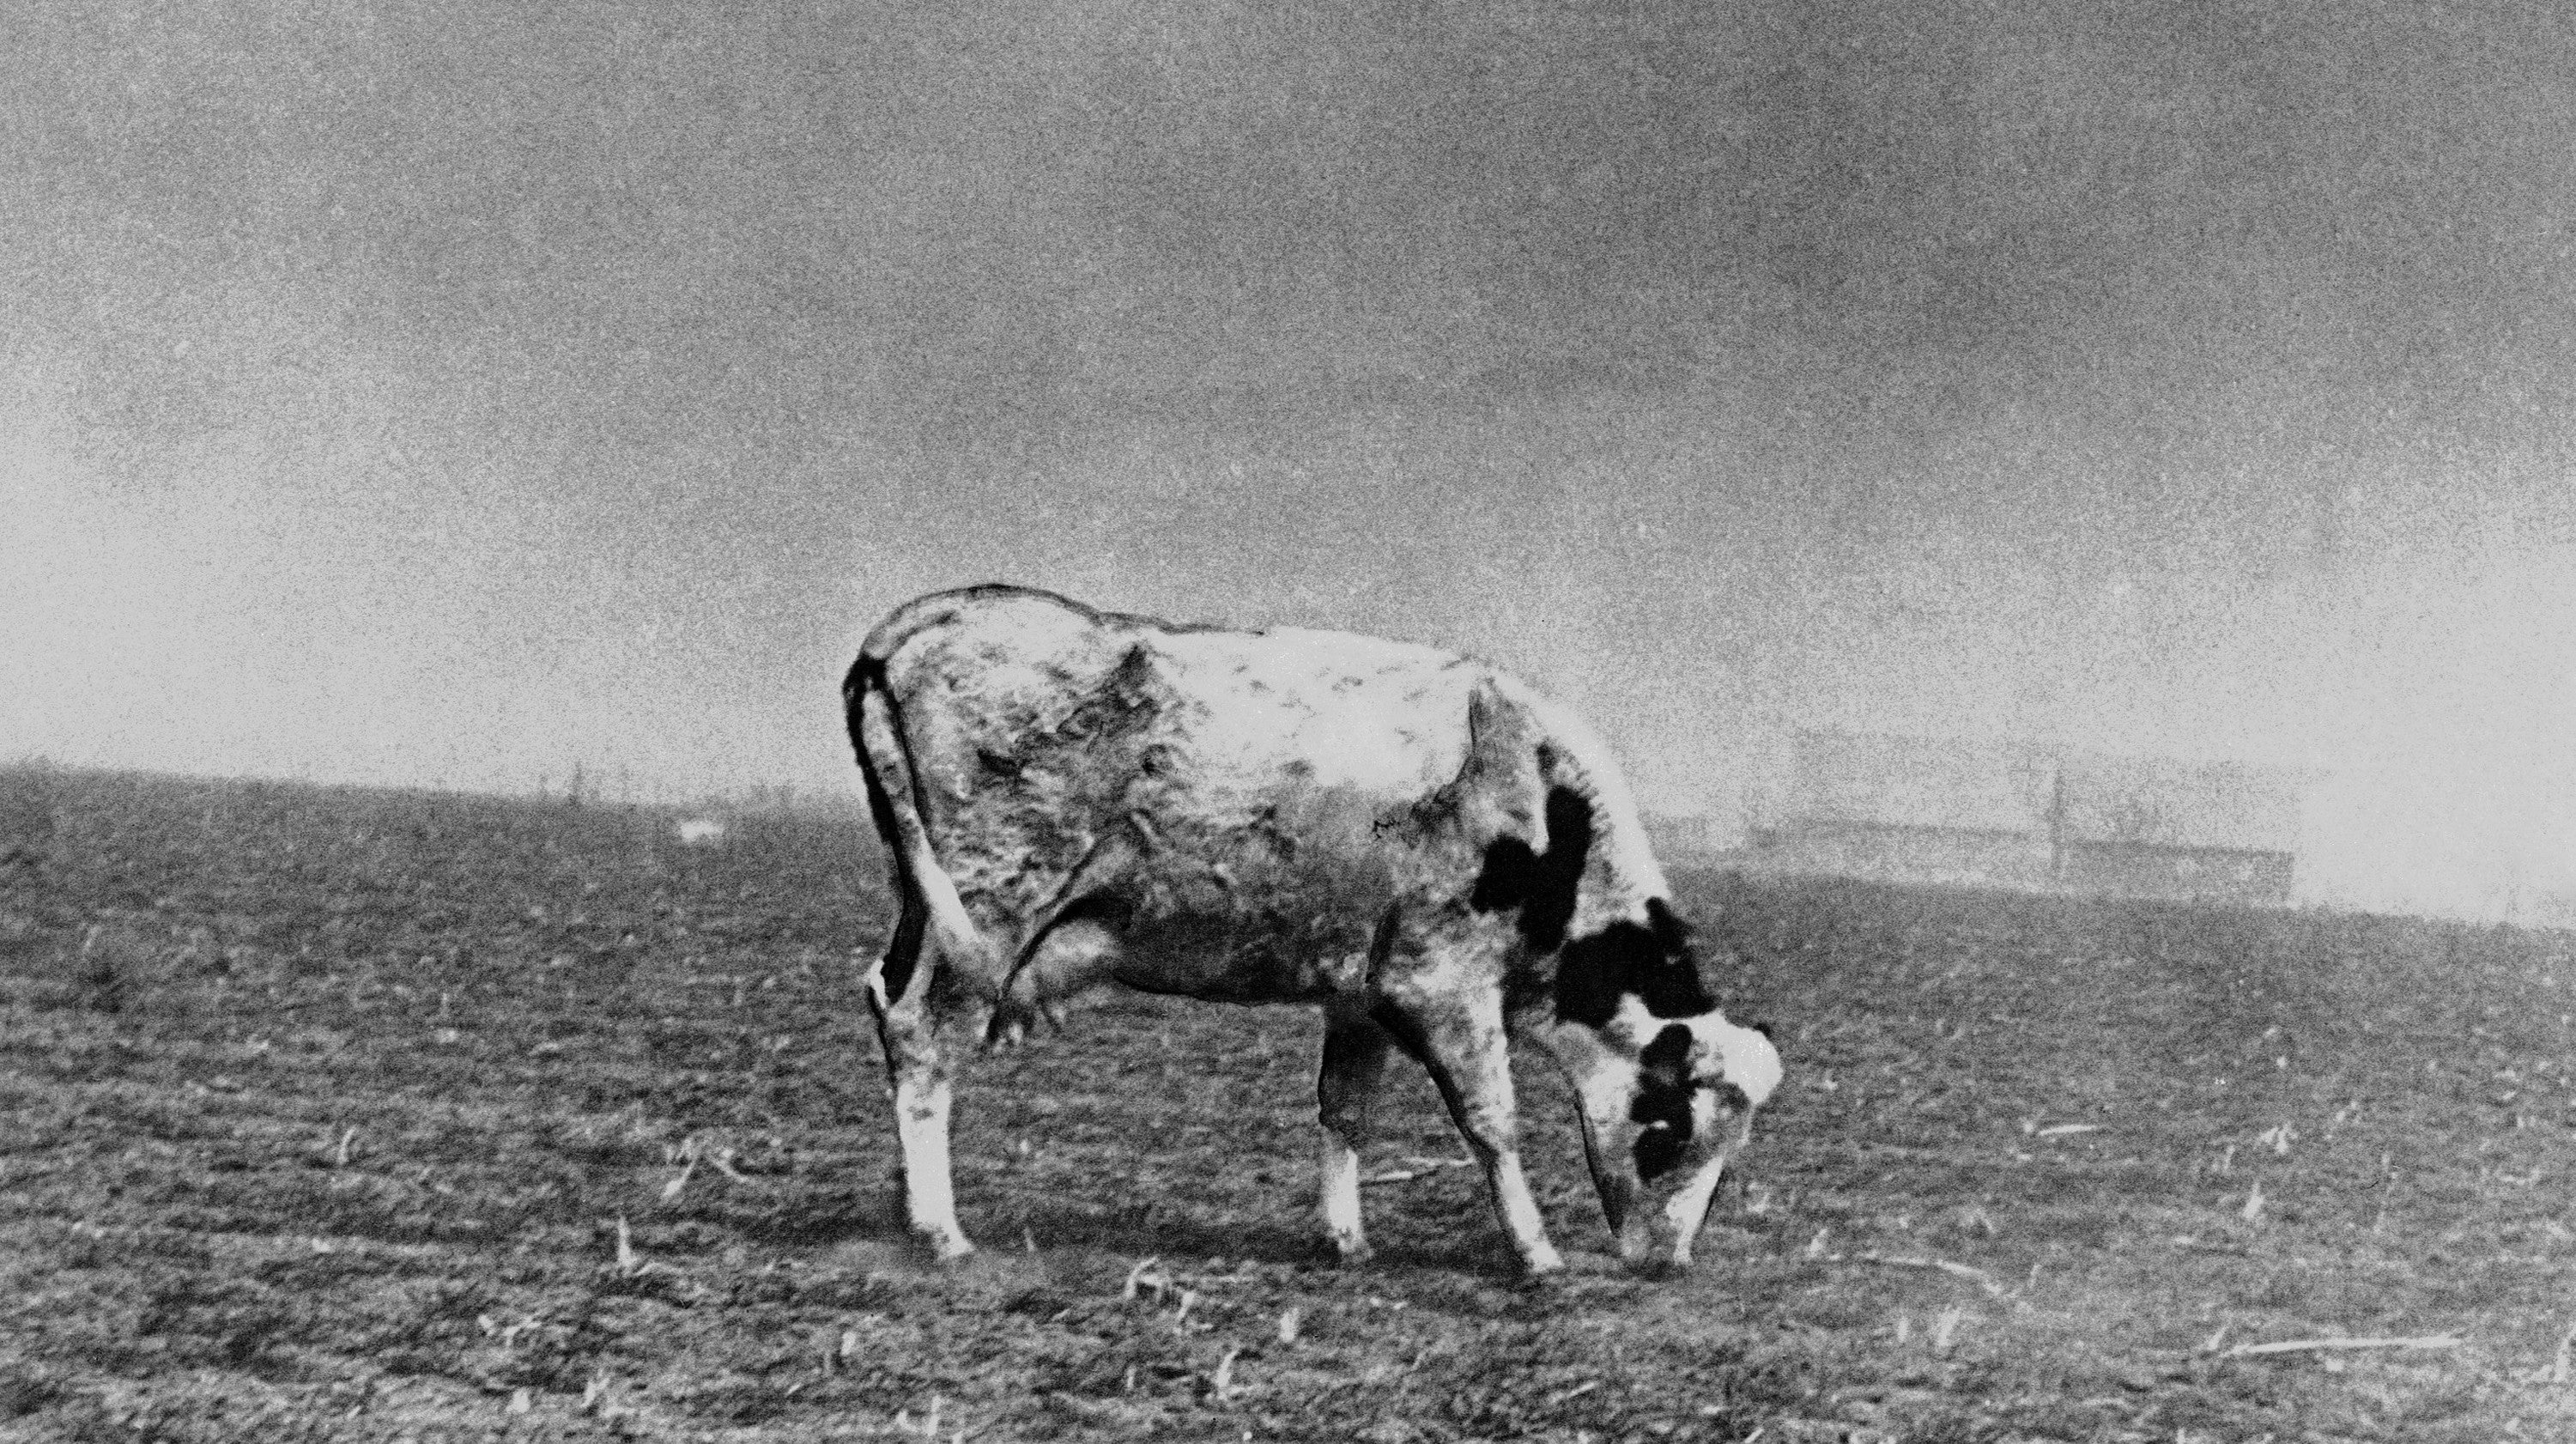 Carbon Emissions Have More Than Doubled The Chances Of Another Dust Bowl